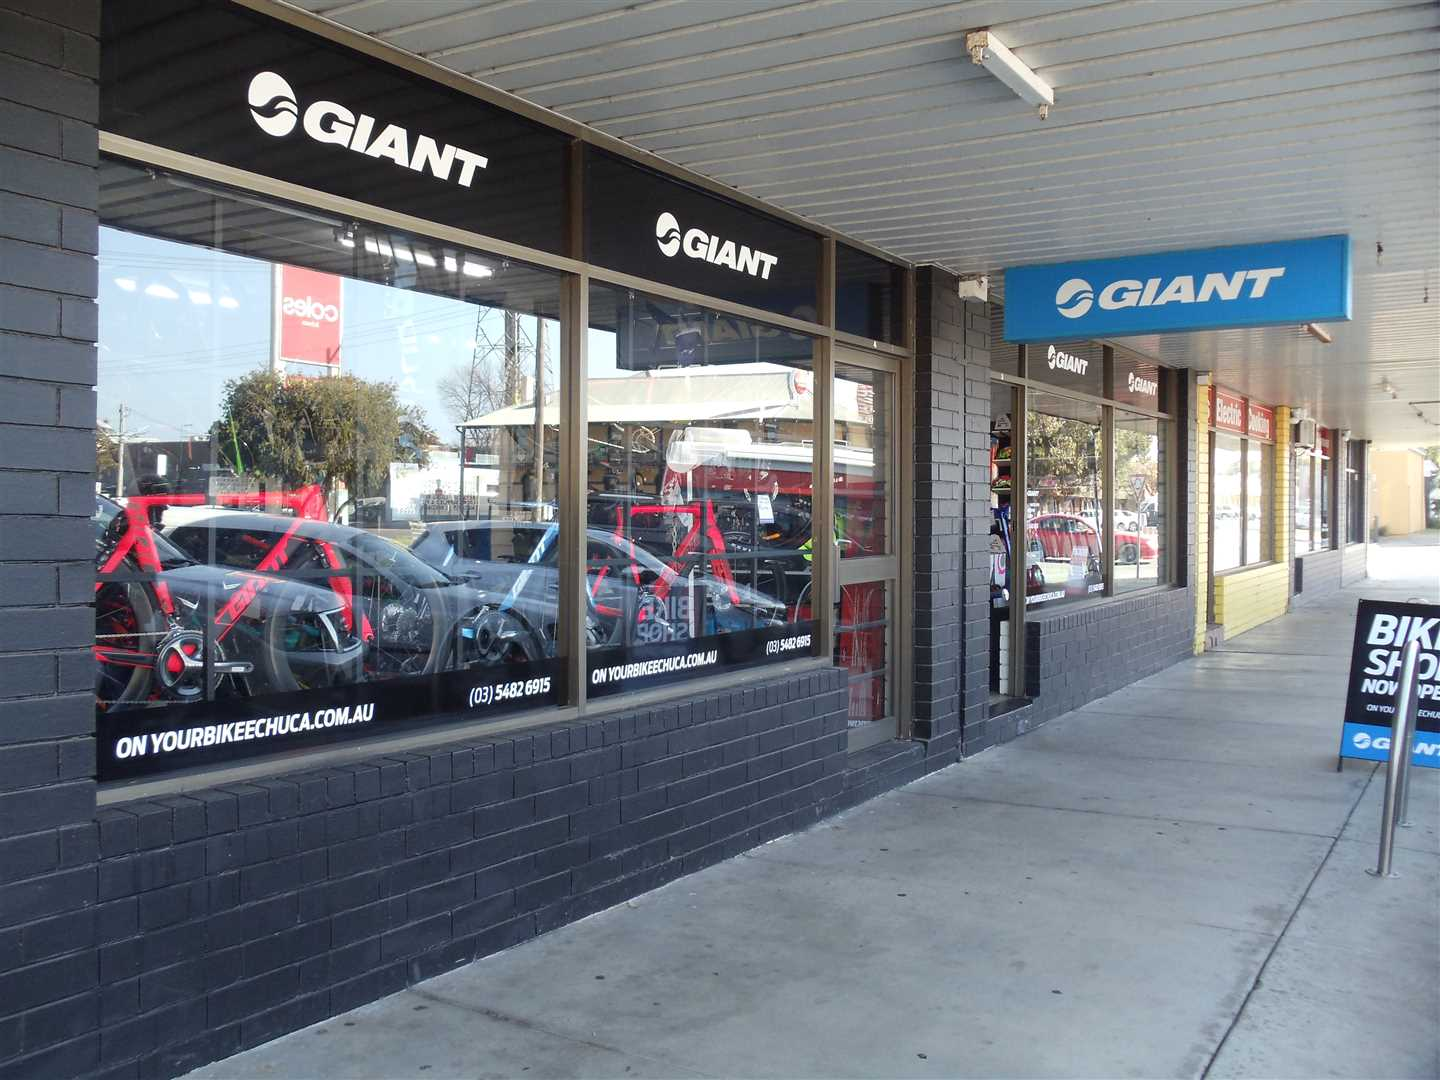 Business for Sale - On Your Bike, Echuca